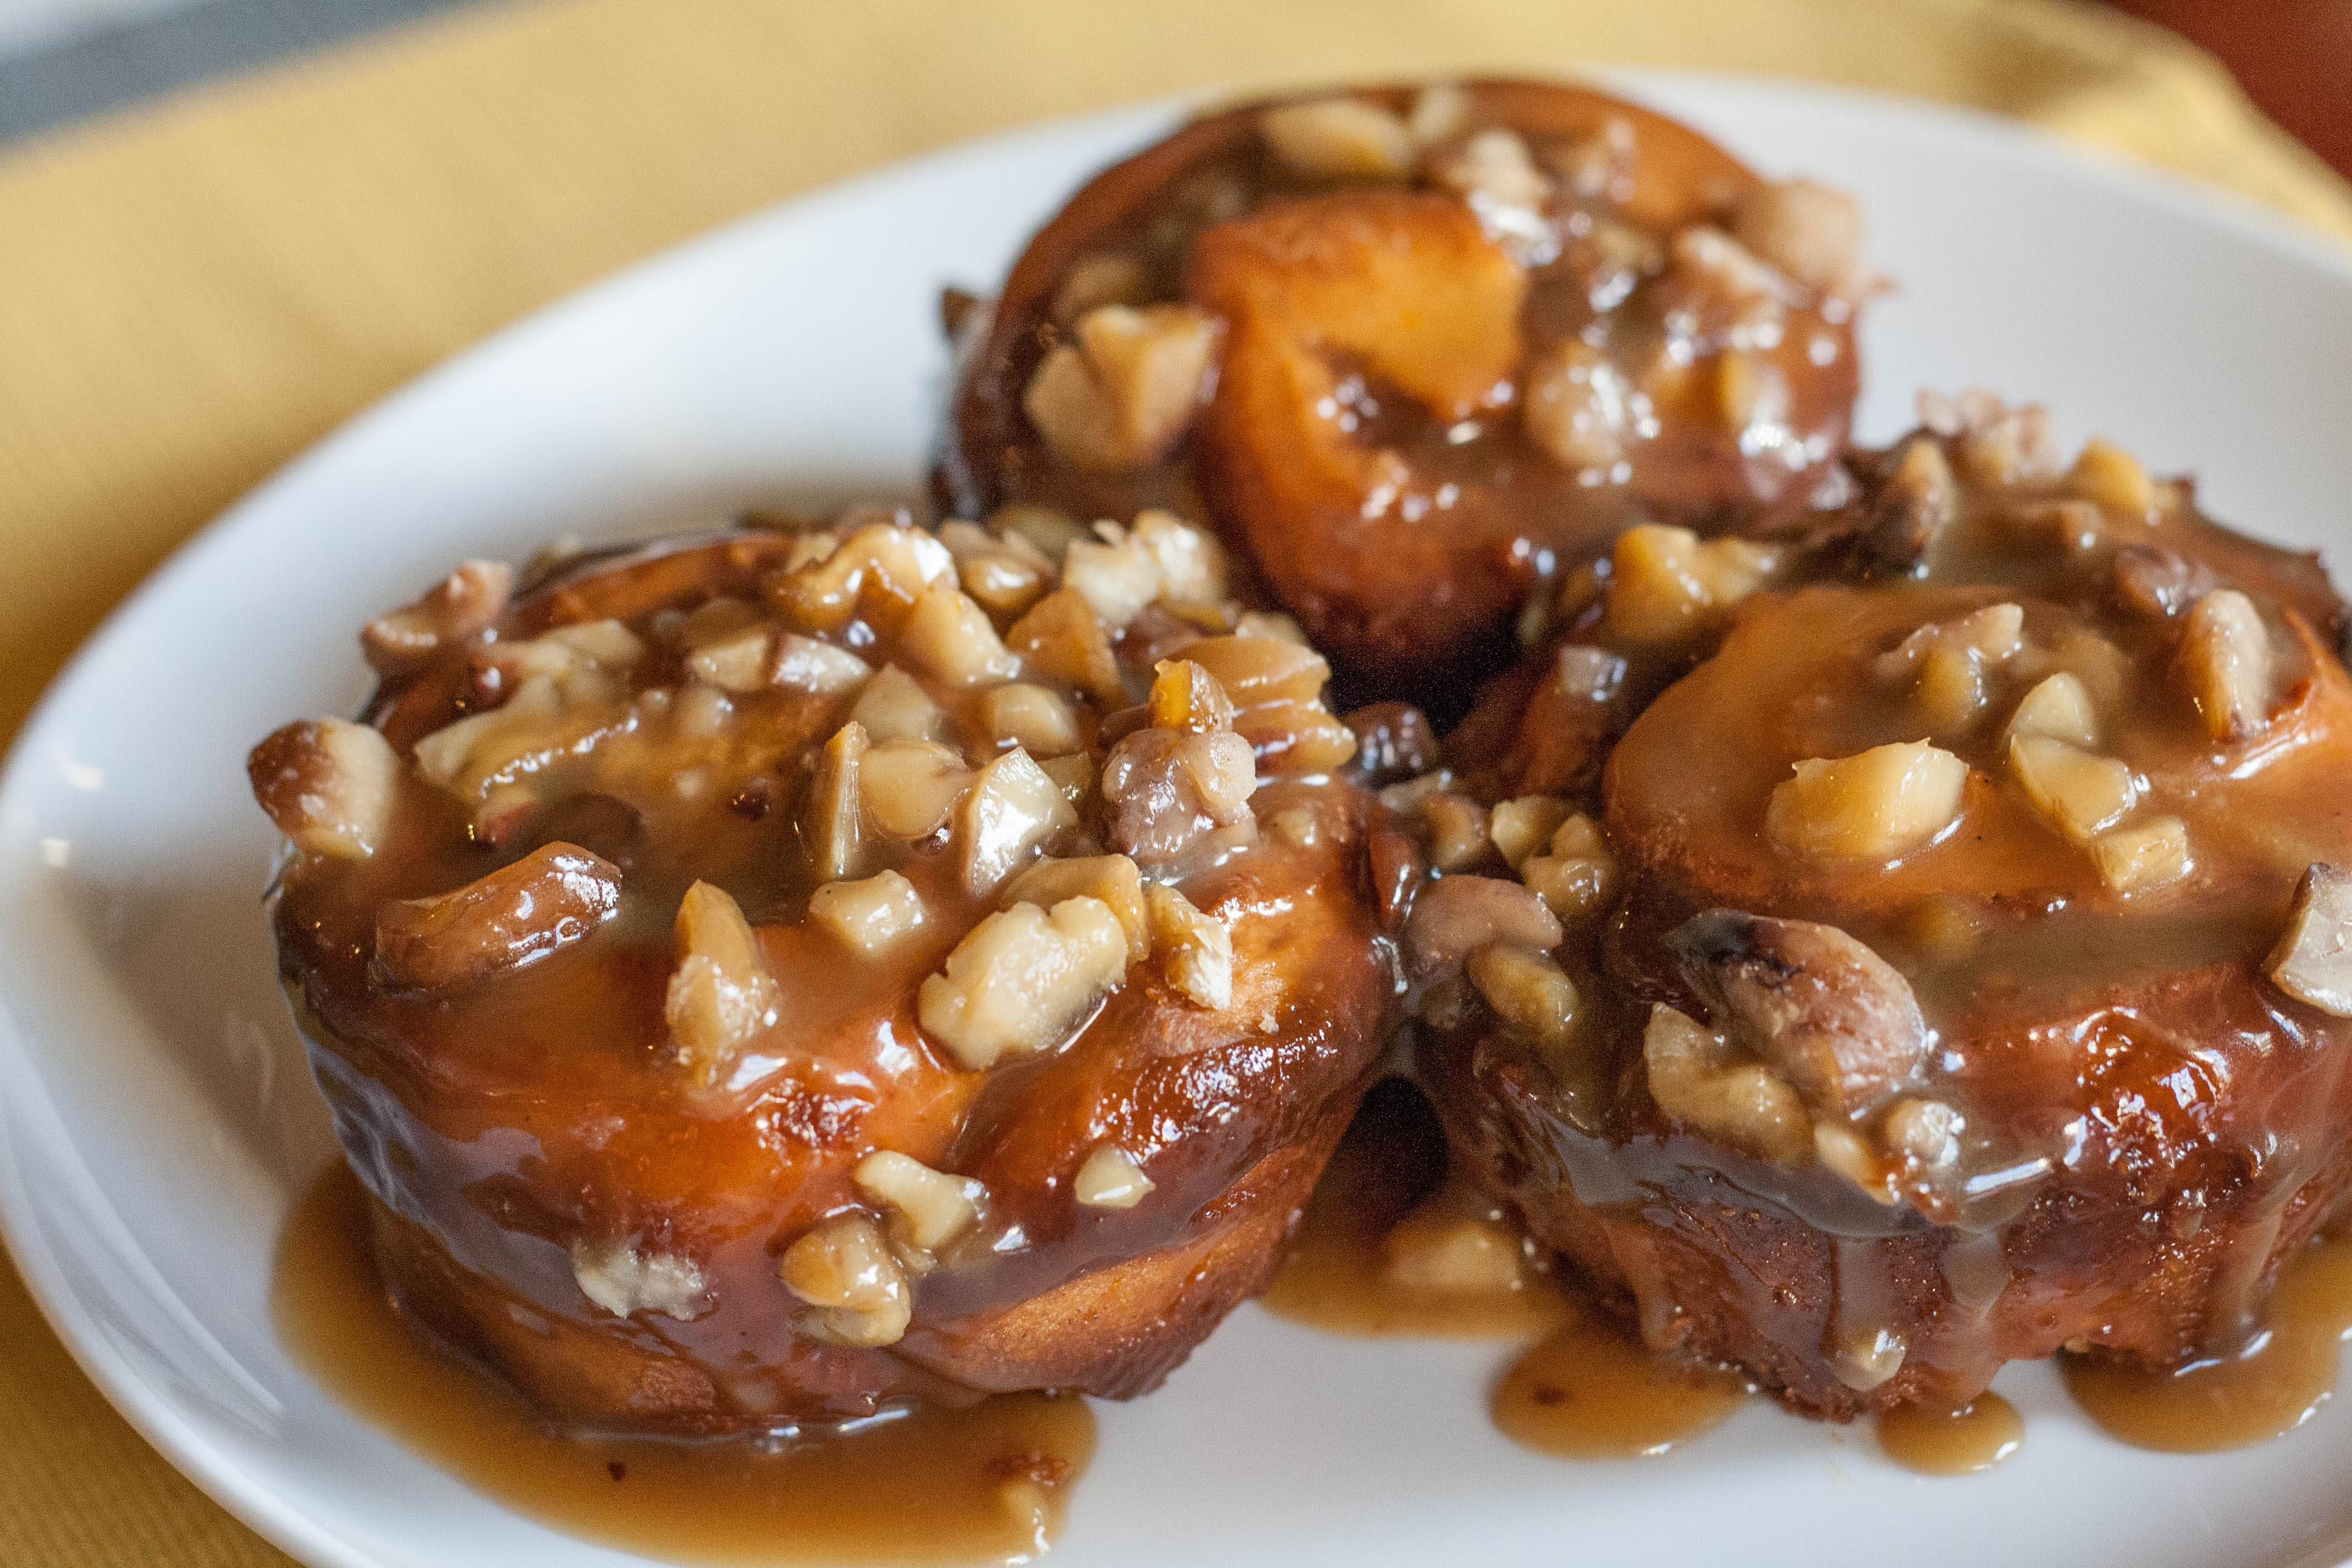 ... sticky buns bacon maple sticky buns golfeados venezuelan sticky buns